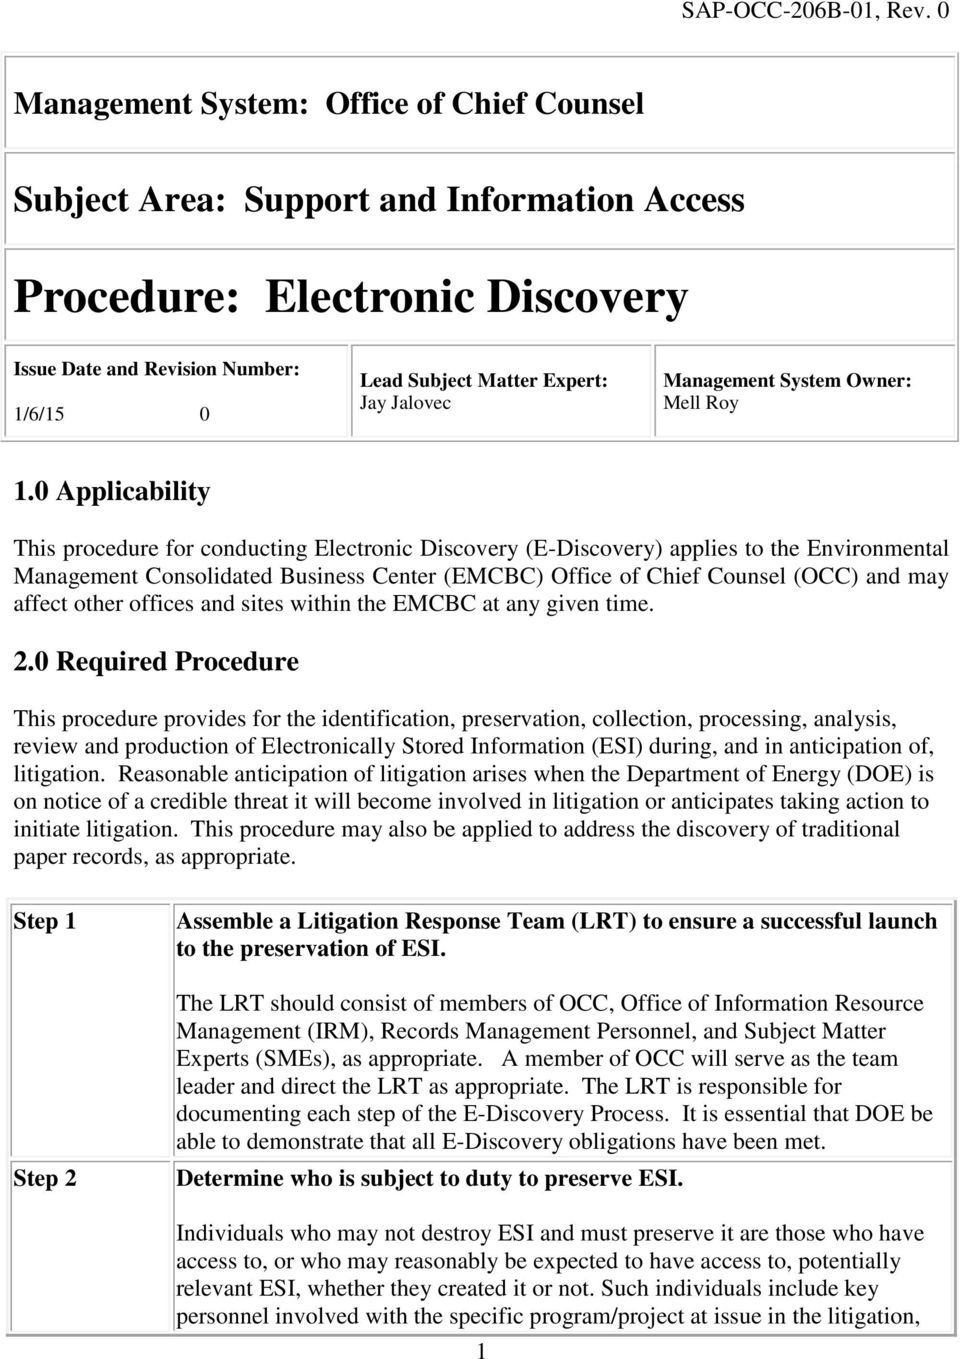 0 Applicability This procedure for conducting Electronic Discovery (E-Discovery) applies to the Environmental Management Consolidated Business Center (EMCBC) Office of Chief Counsel (OCC) and may